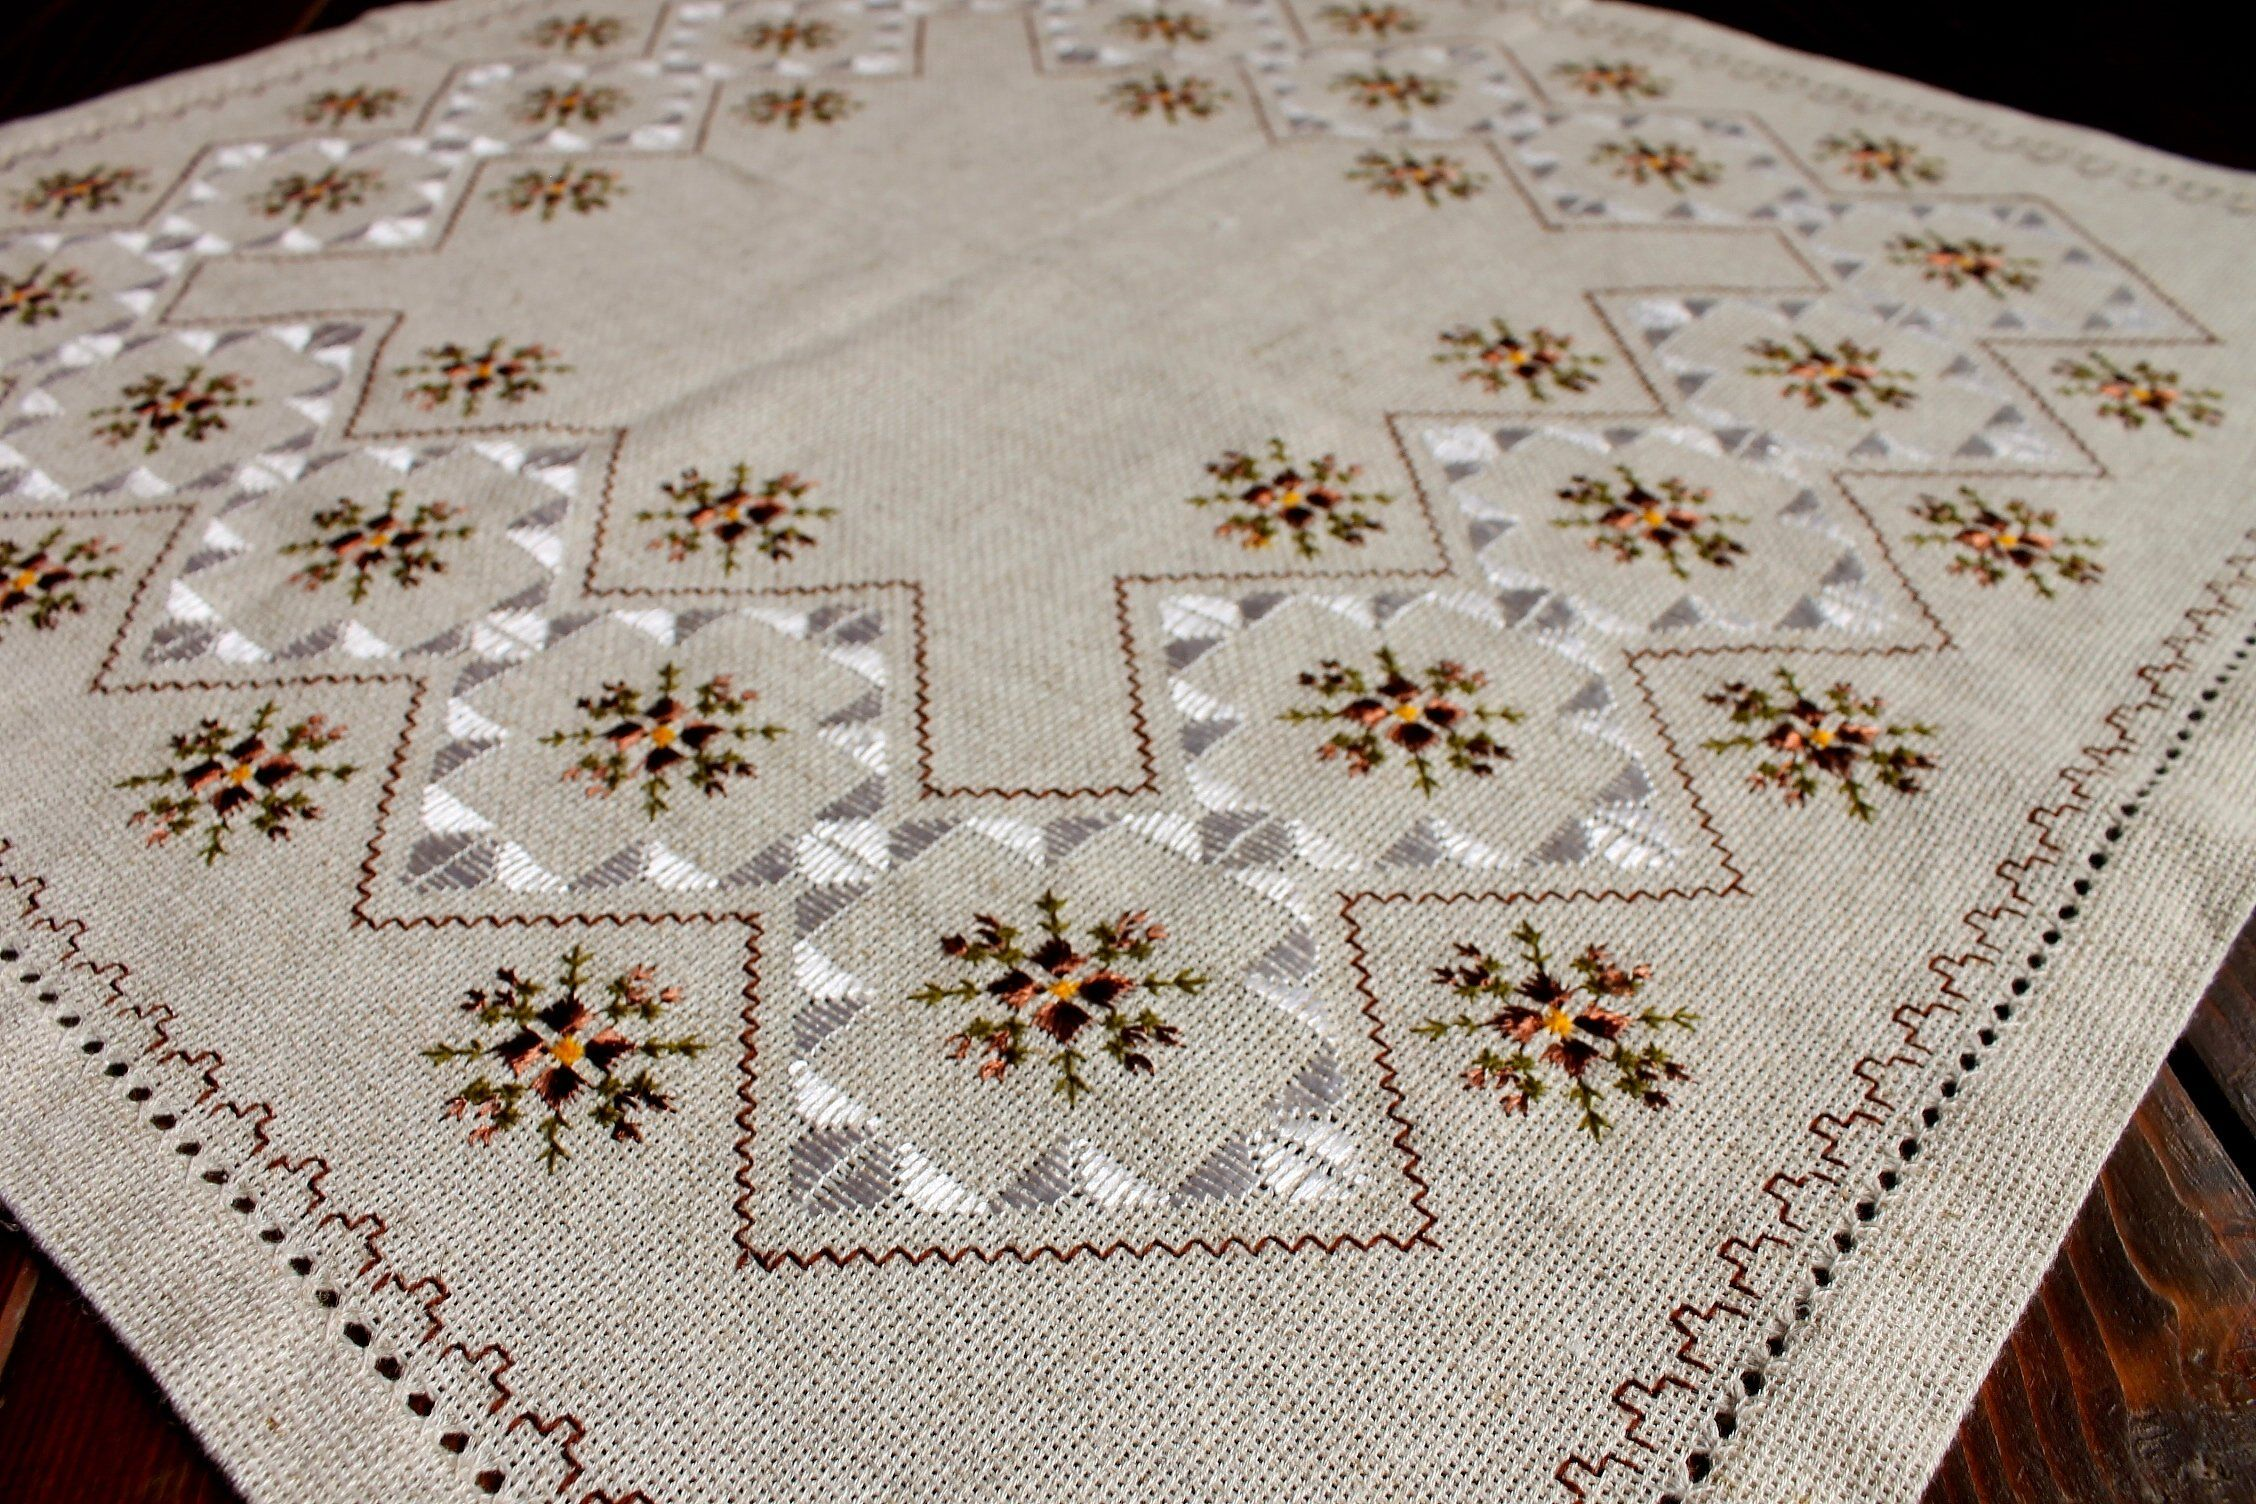 Rustic linen embroidered tablecloth for coffee table, small square handmade cloth, ethnic table cover, silk embroidery,cottage chic #decorateshop